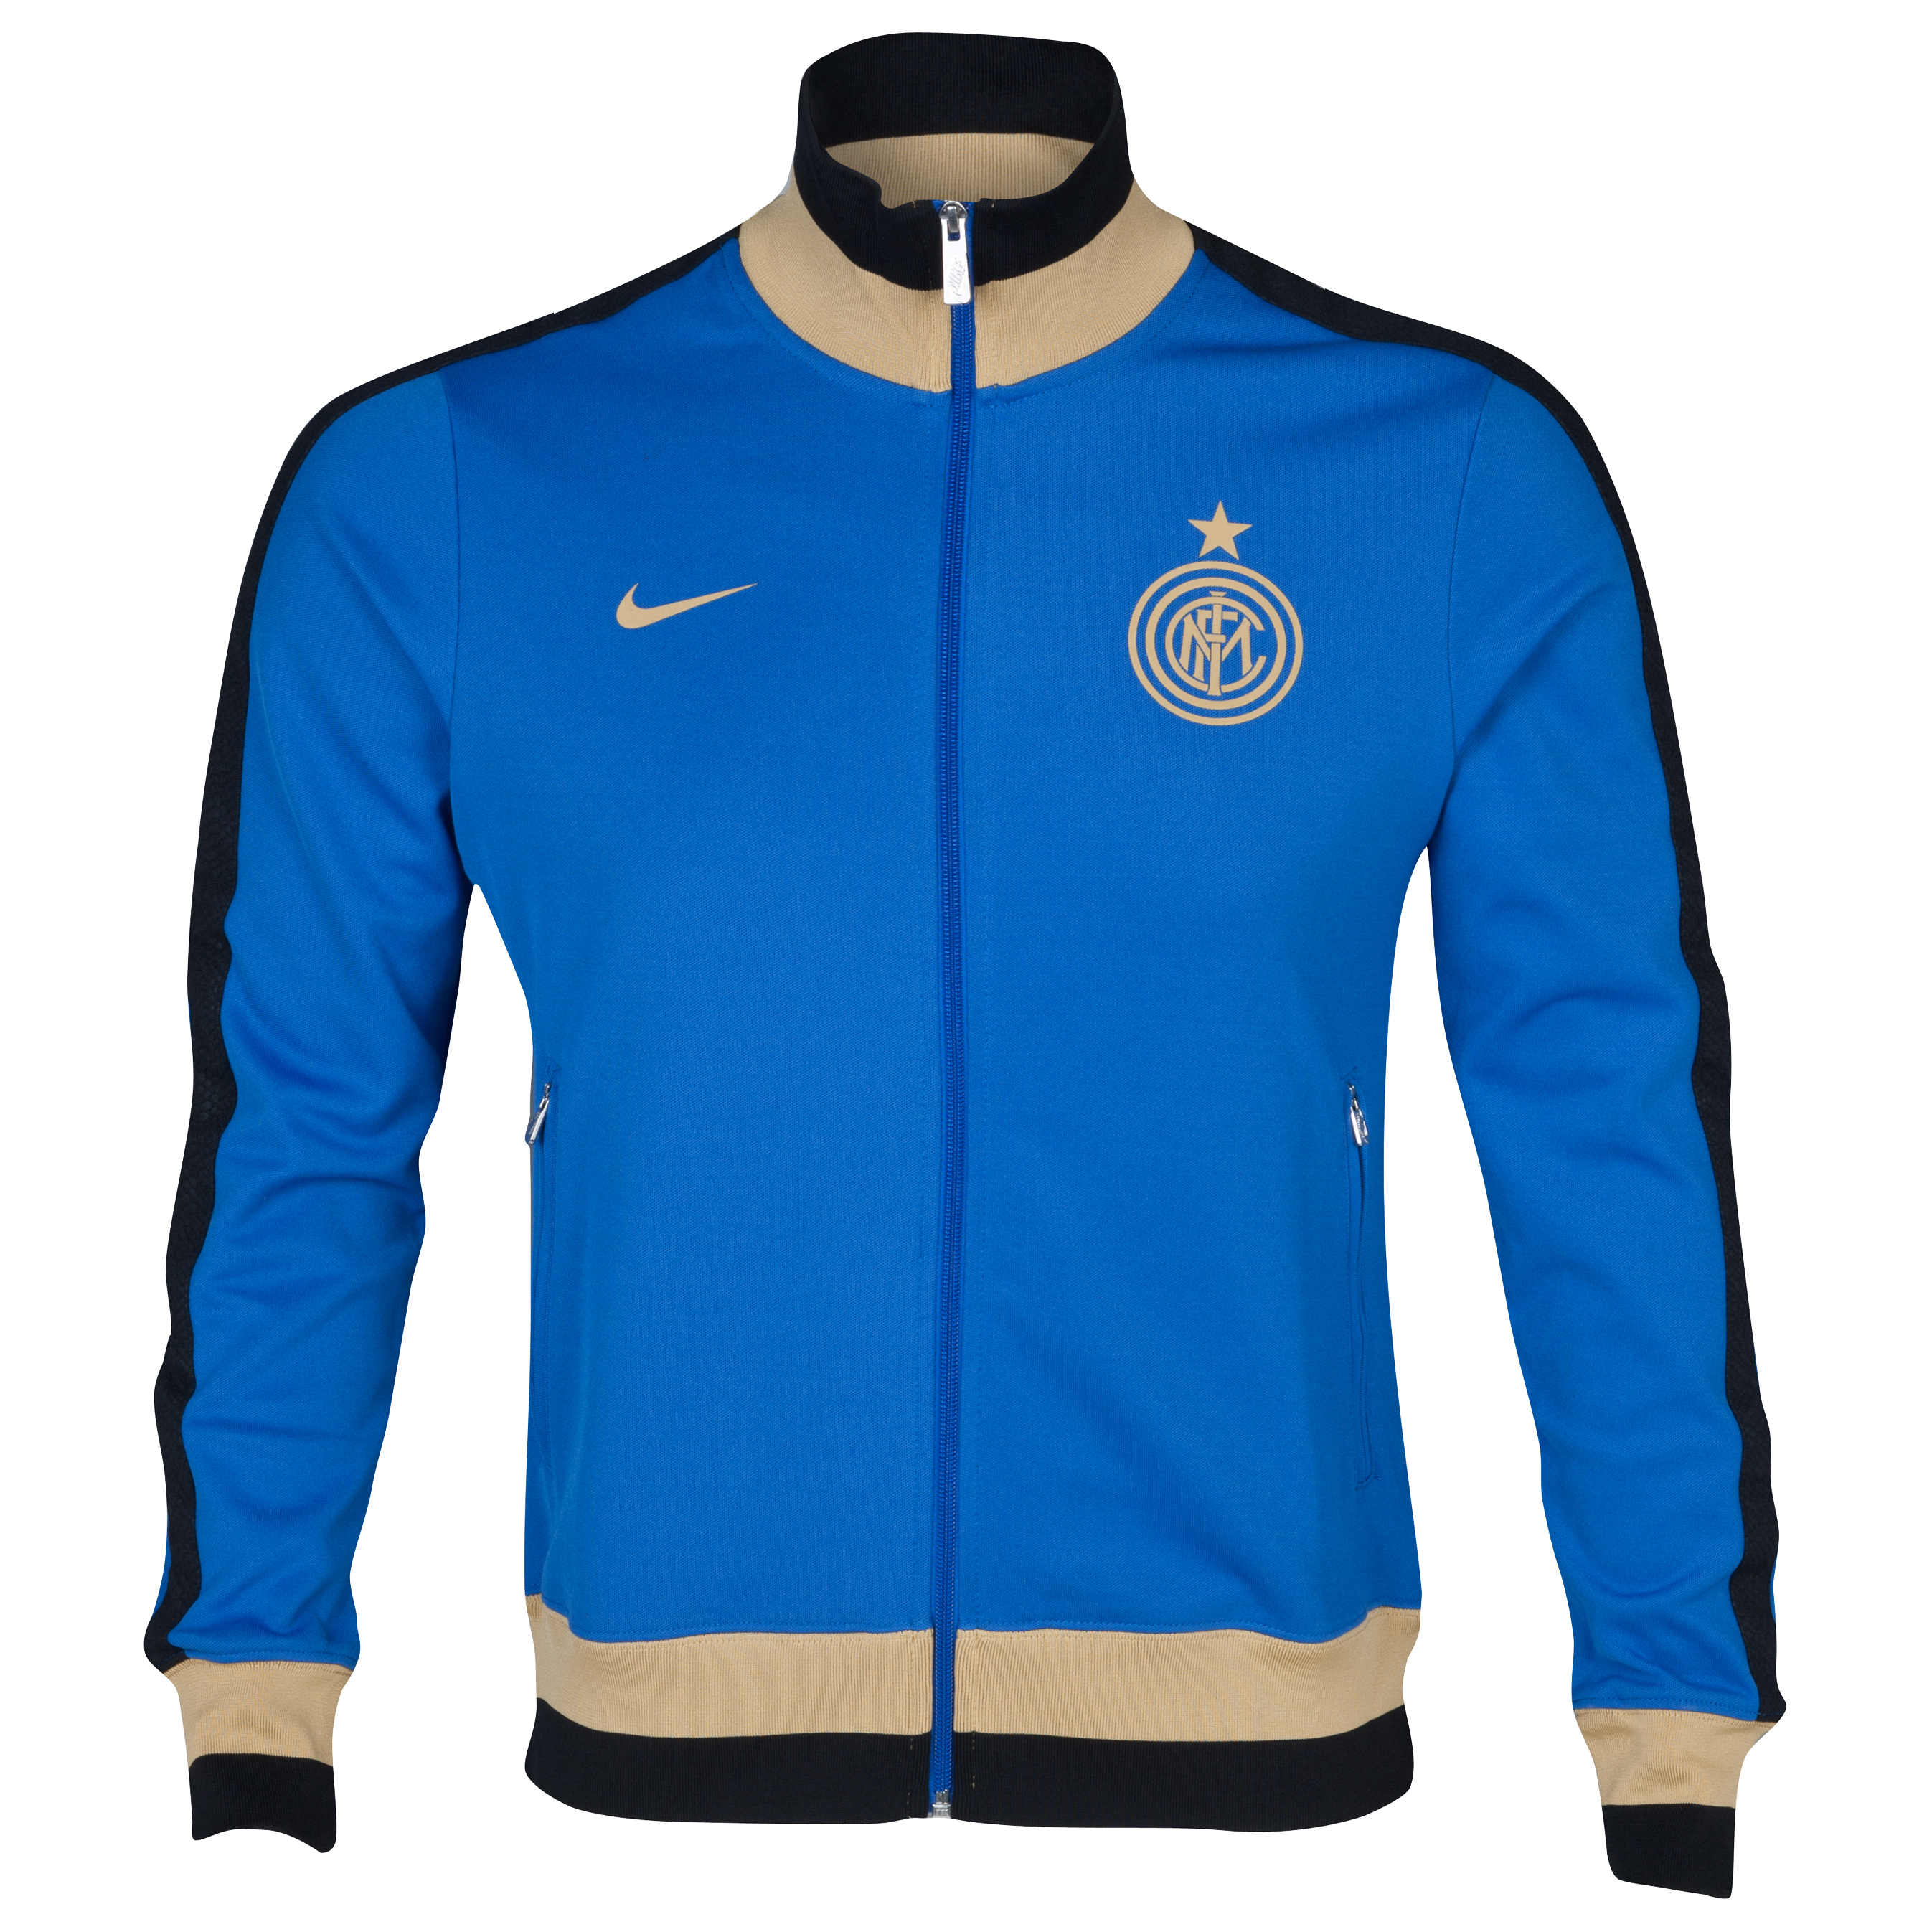 Inter Milan Authentic N98 Track Jacket - Royal Blue/Jersey Gold